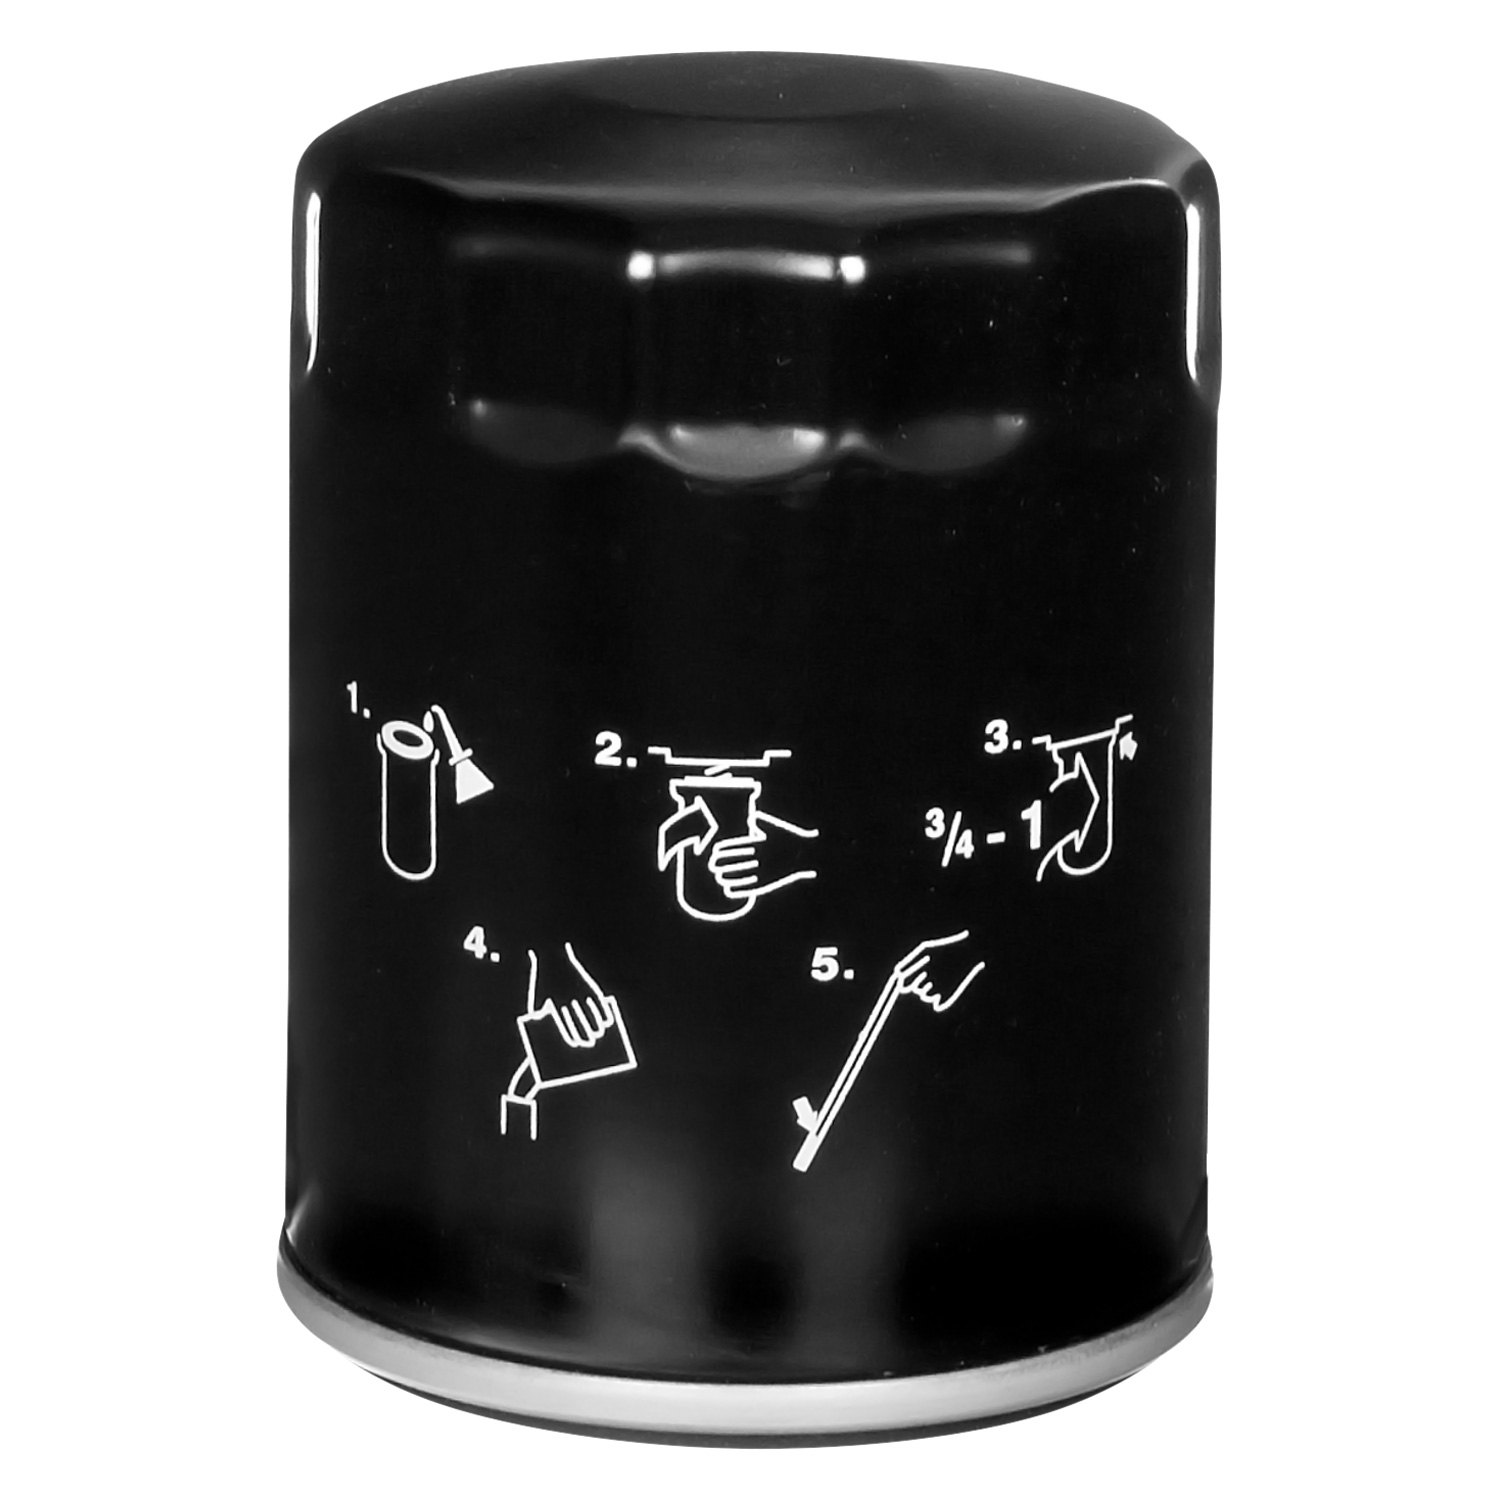 Acdelco Jaguar Xf 2010 Professional Engine Oil Filter